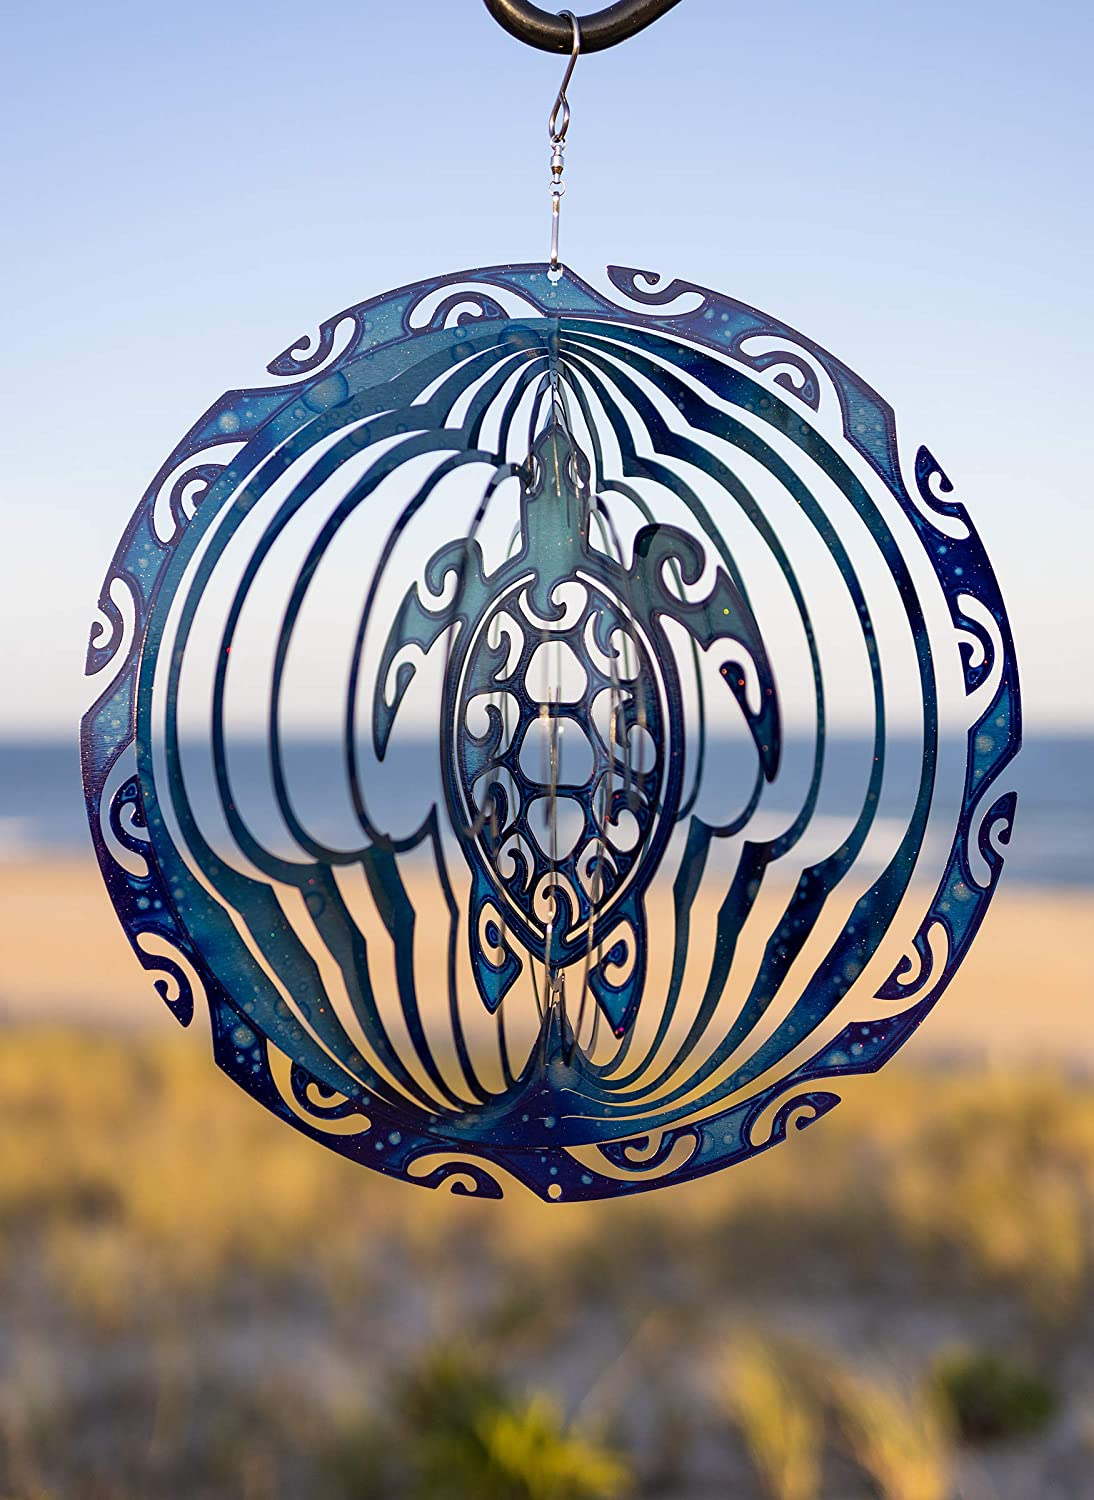 VP Home Tribal Turtle Kinetic 3D Metal Outdoor Garden Decor Wind Spinner